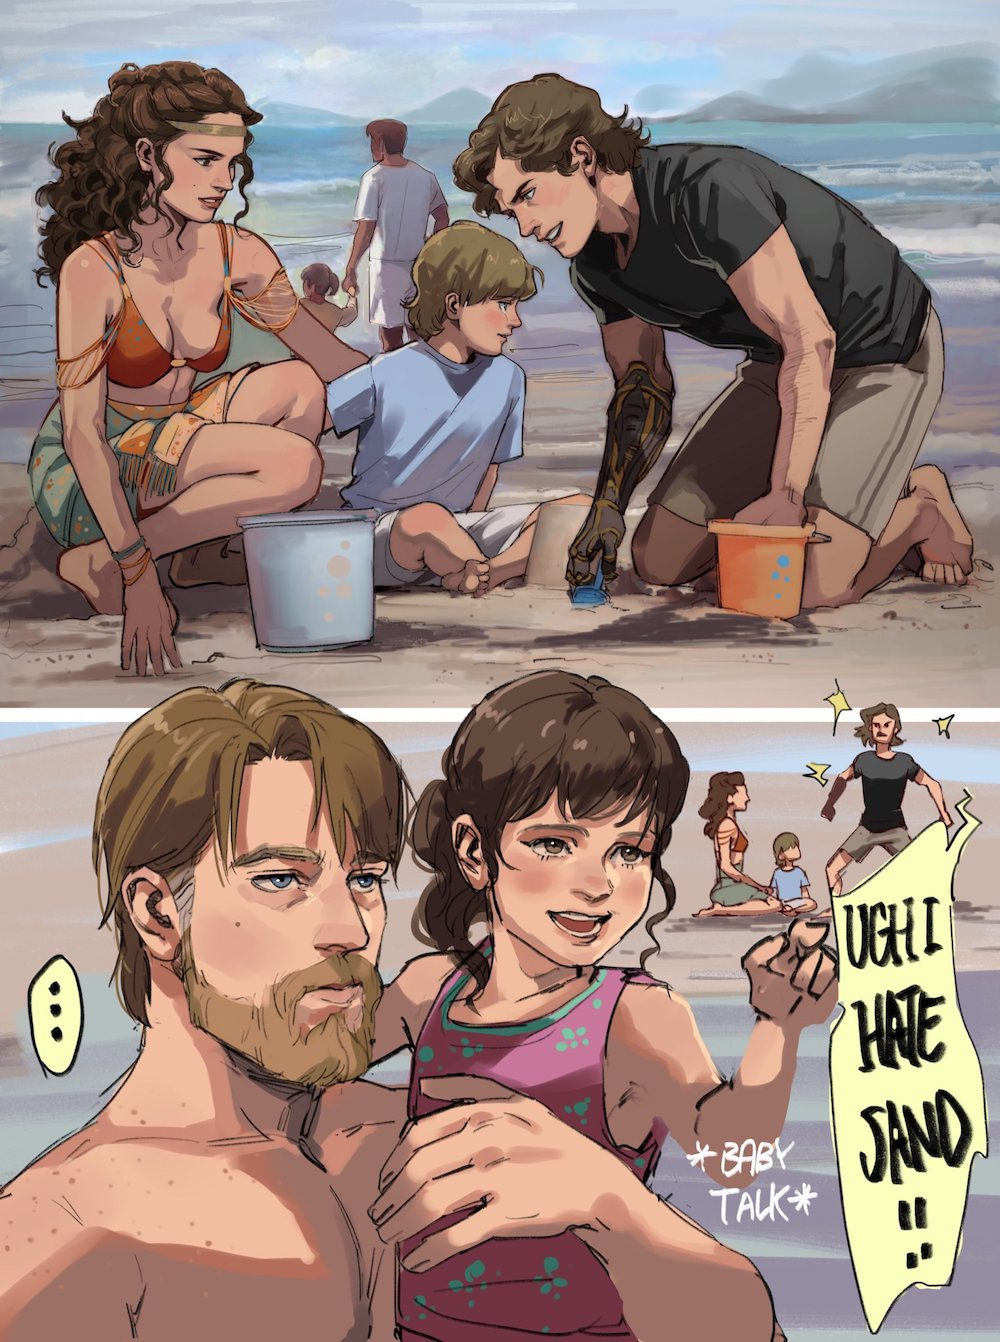 Padme, Anakin and Obi wan with kids on the beach